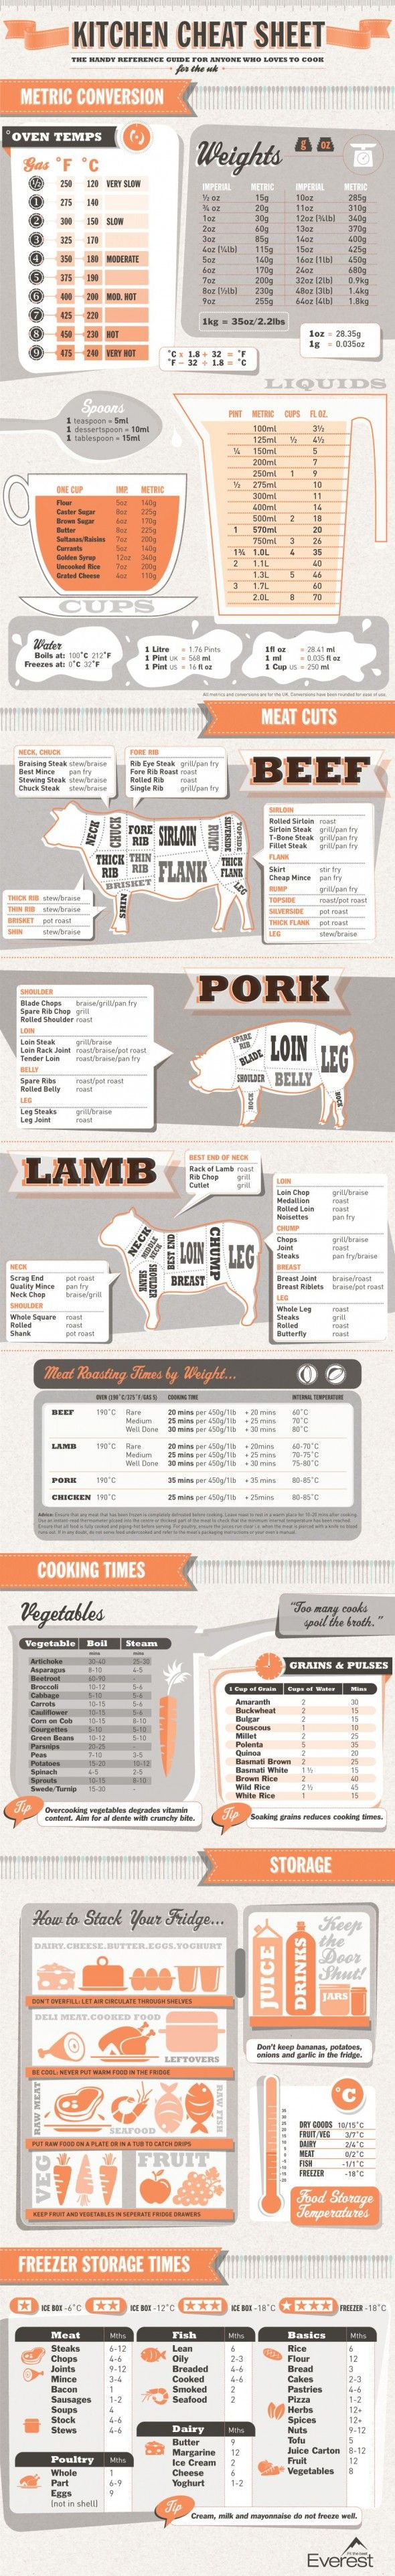 Infographic: The Ultimate Kitchen Cheat Sheet